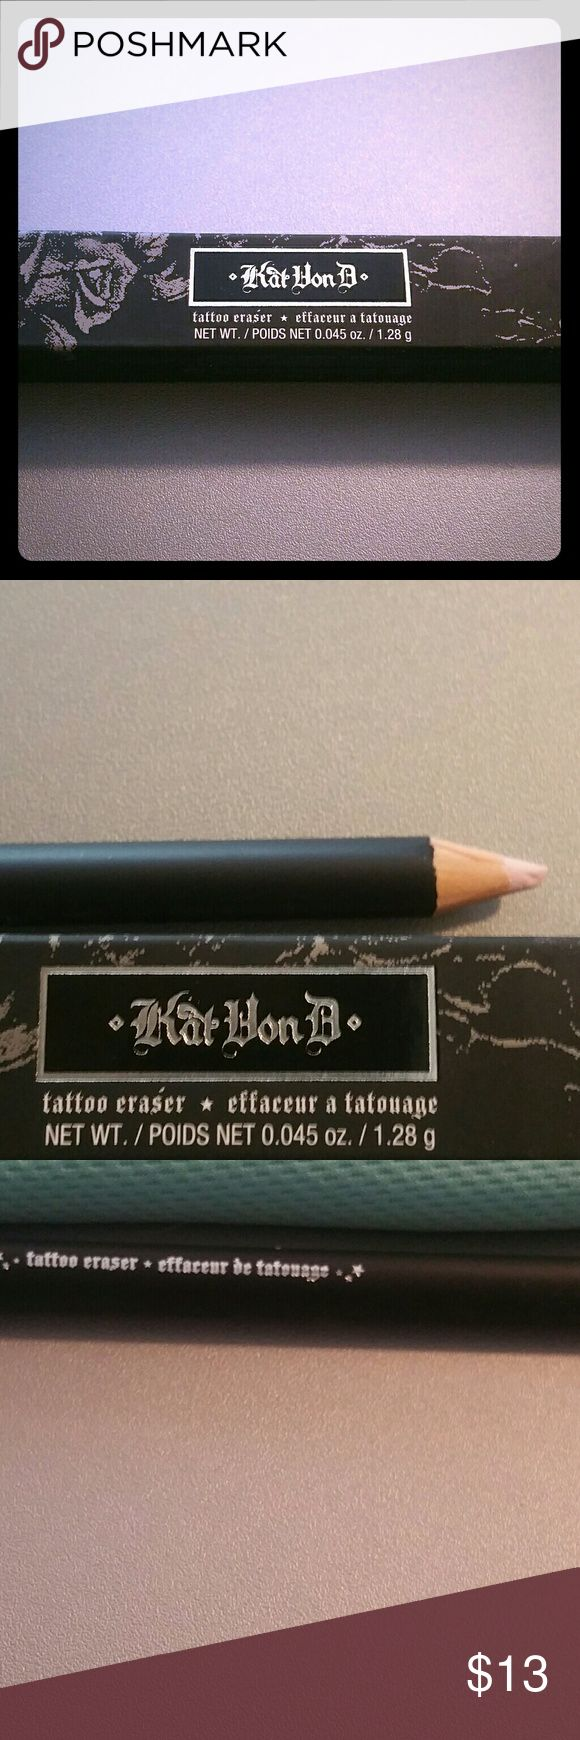 Kat Von D tattoo eraser A light pink pencil that gives you the ability to conceal that tatoo just for a day or few hours. It's the ultimate, customizable coverage, in four simple steps: prep, conceal, perfect, and set. The tip has a little smudge on it from when I took it out to take a picture because of the way it is packaged. Minor though. Kat Von D Makeup Concealer